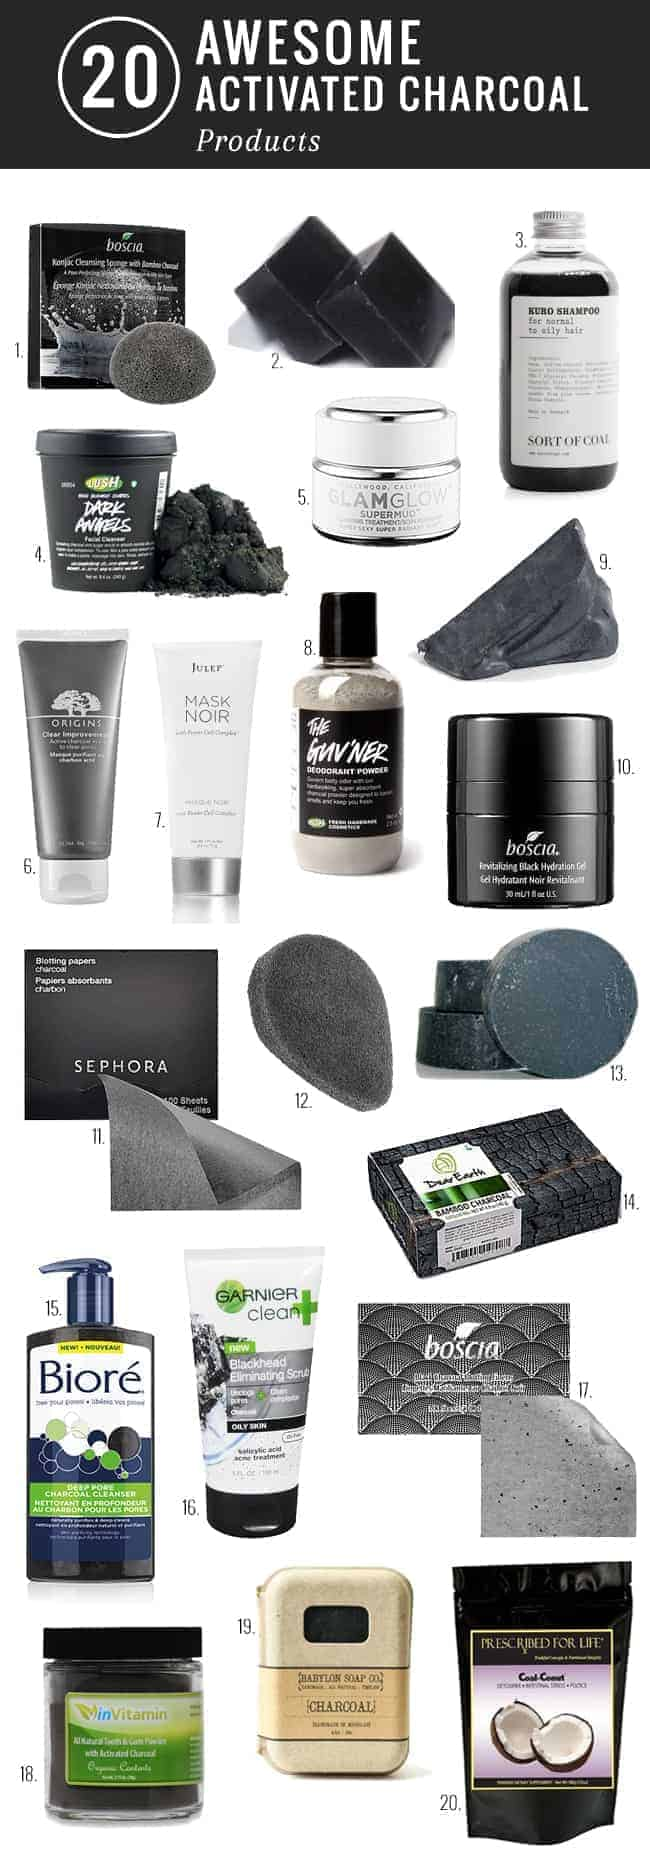 20 Awesome Activated Charcoal Products | Hello Glow